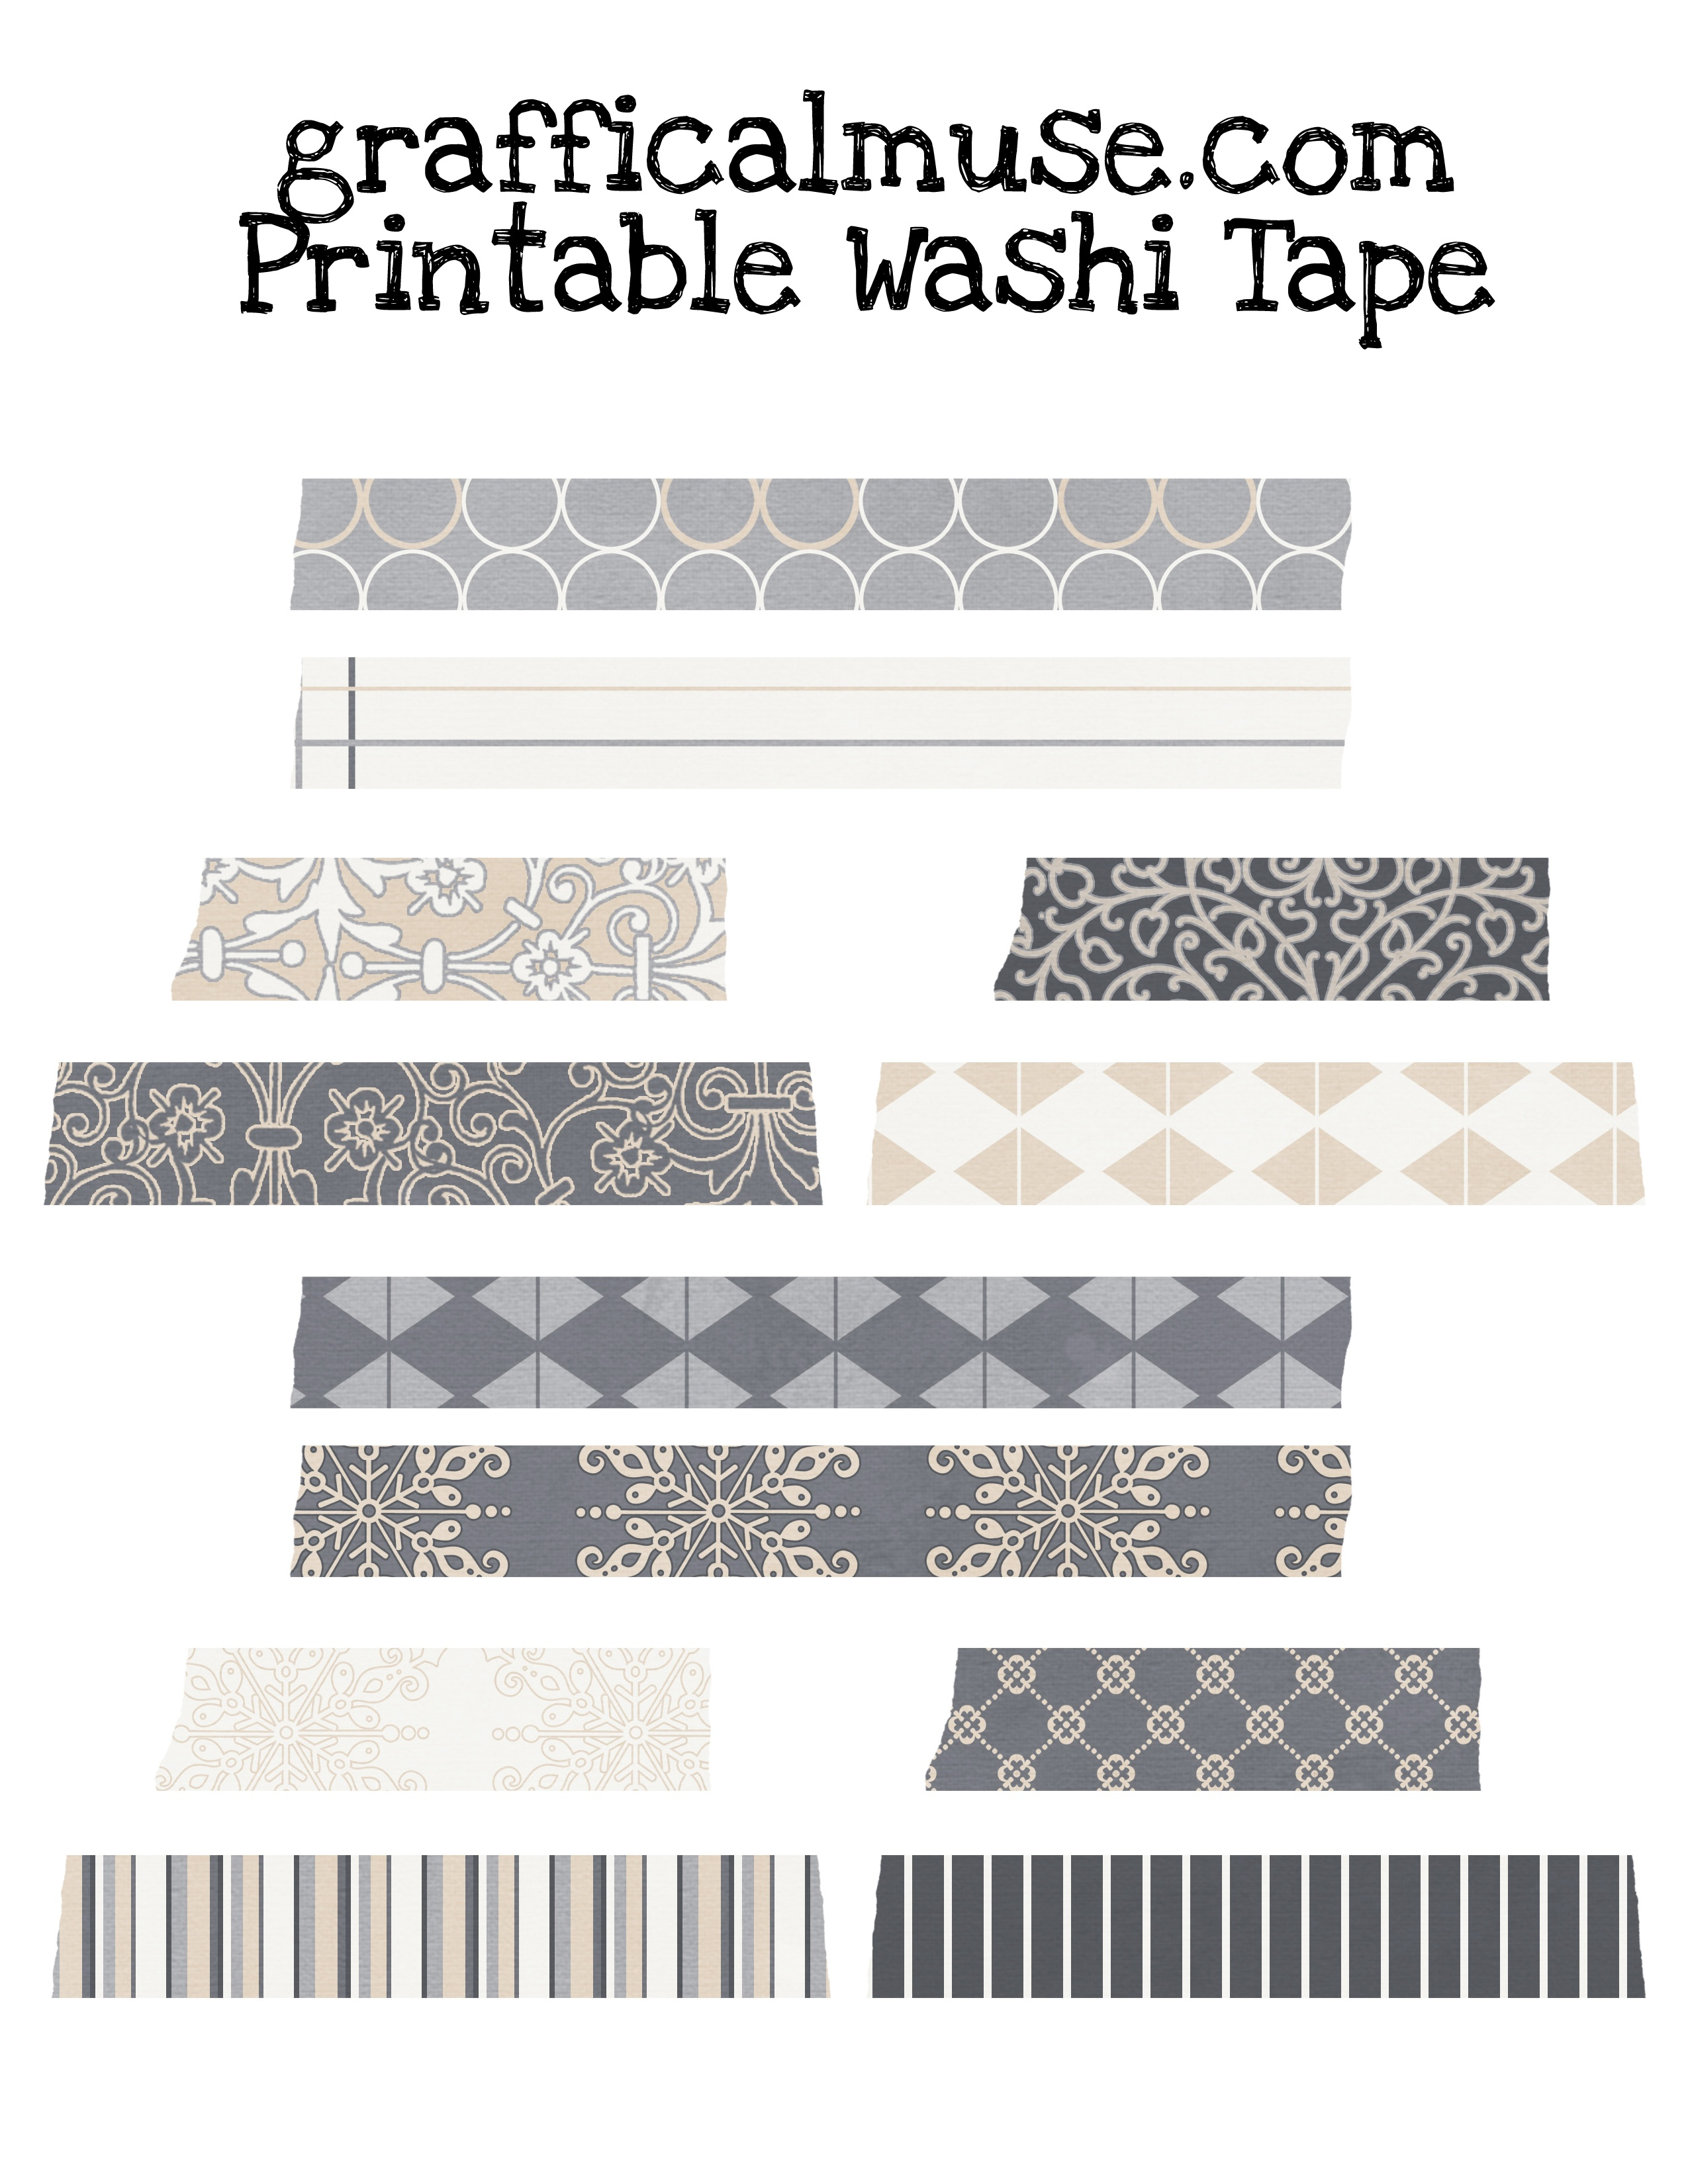 Free Printable Washi Tape - Neutral Patterns - The Graffical Muse - Free Printable Washi Tape